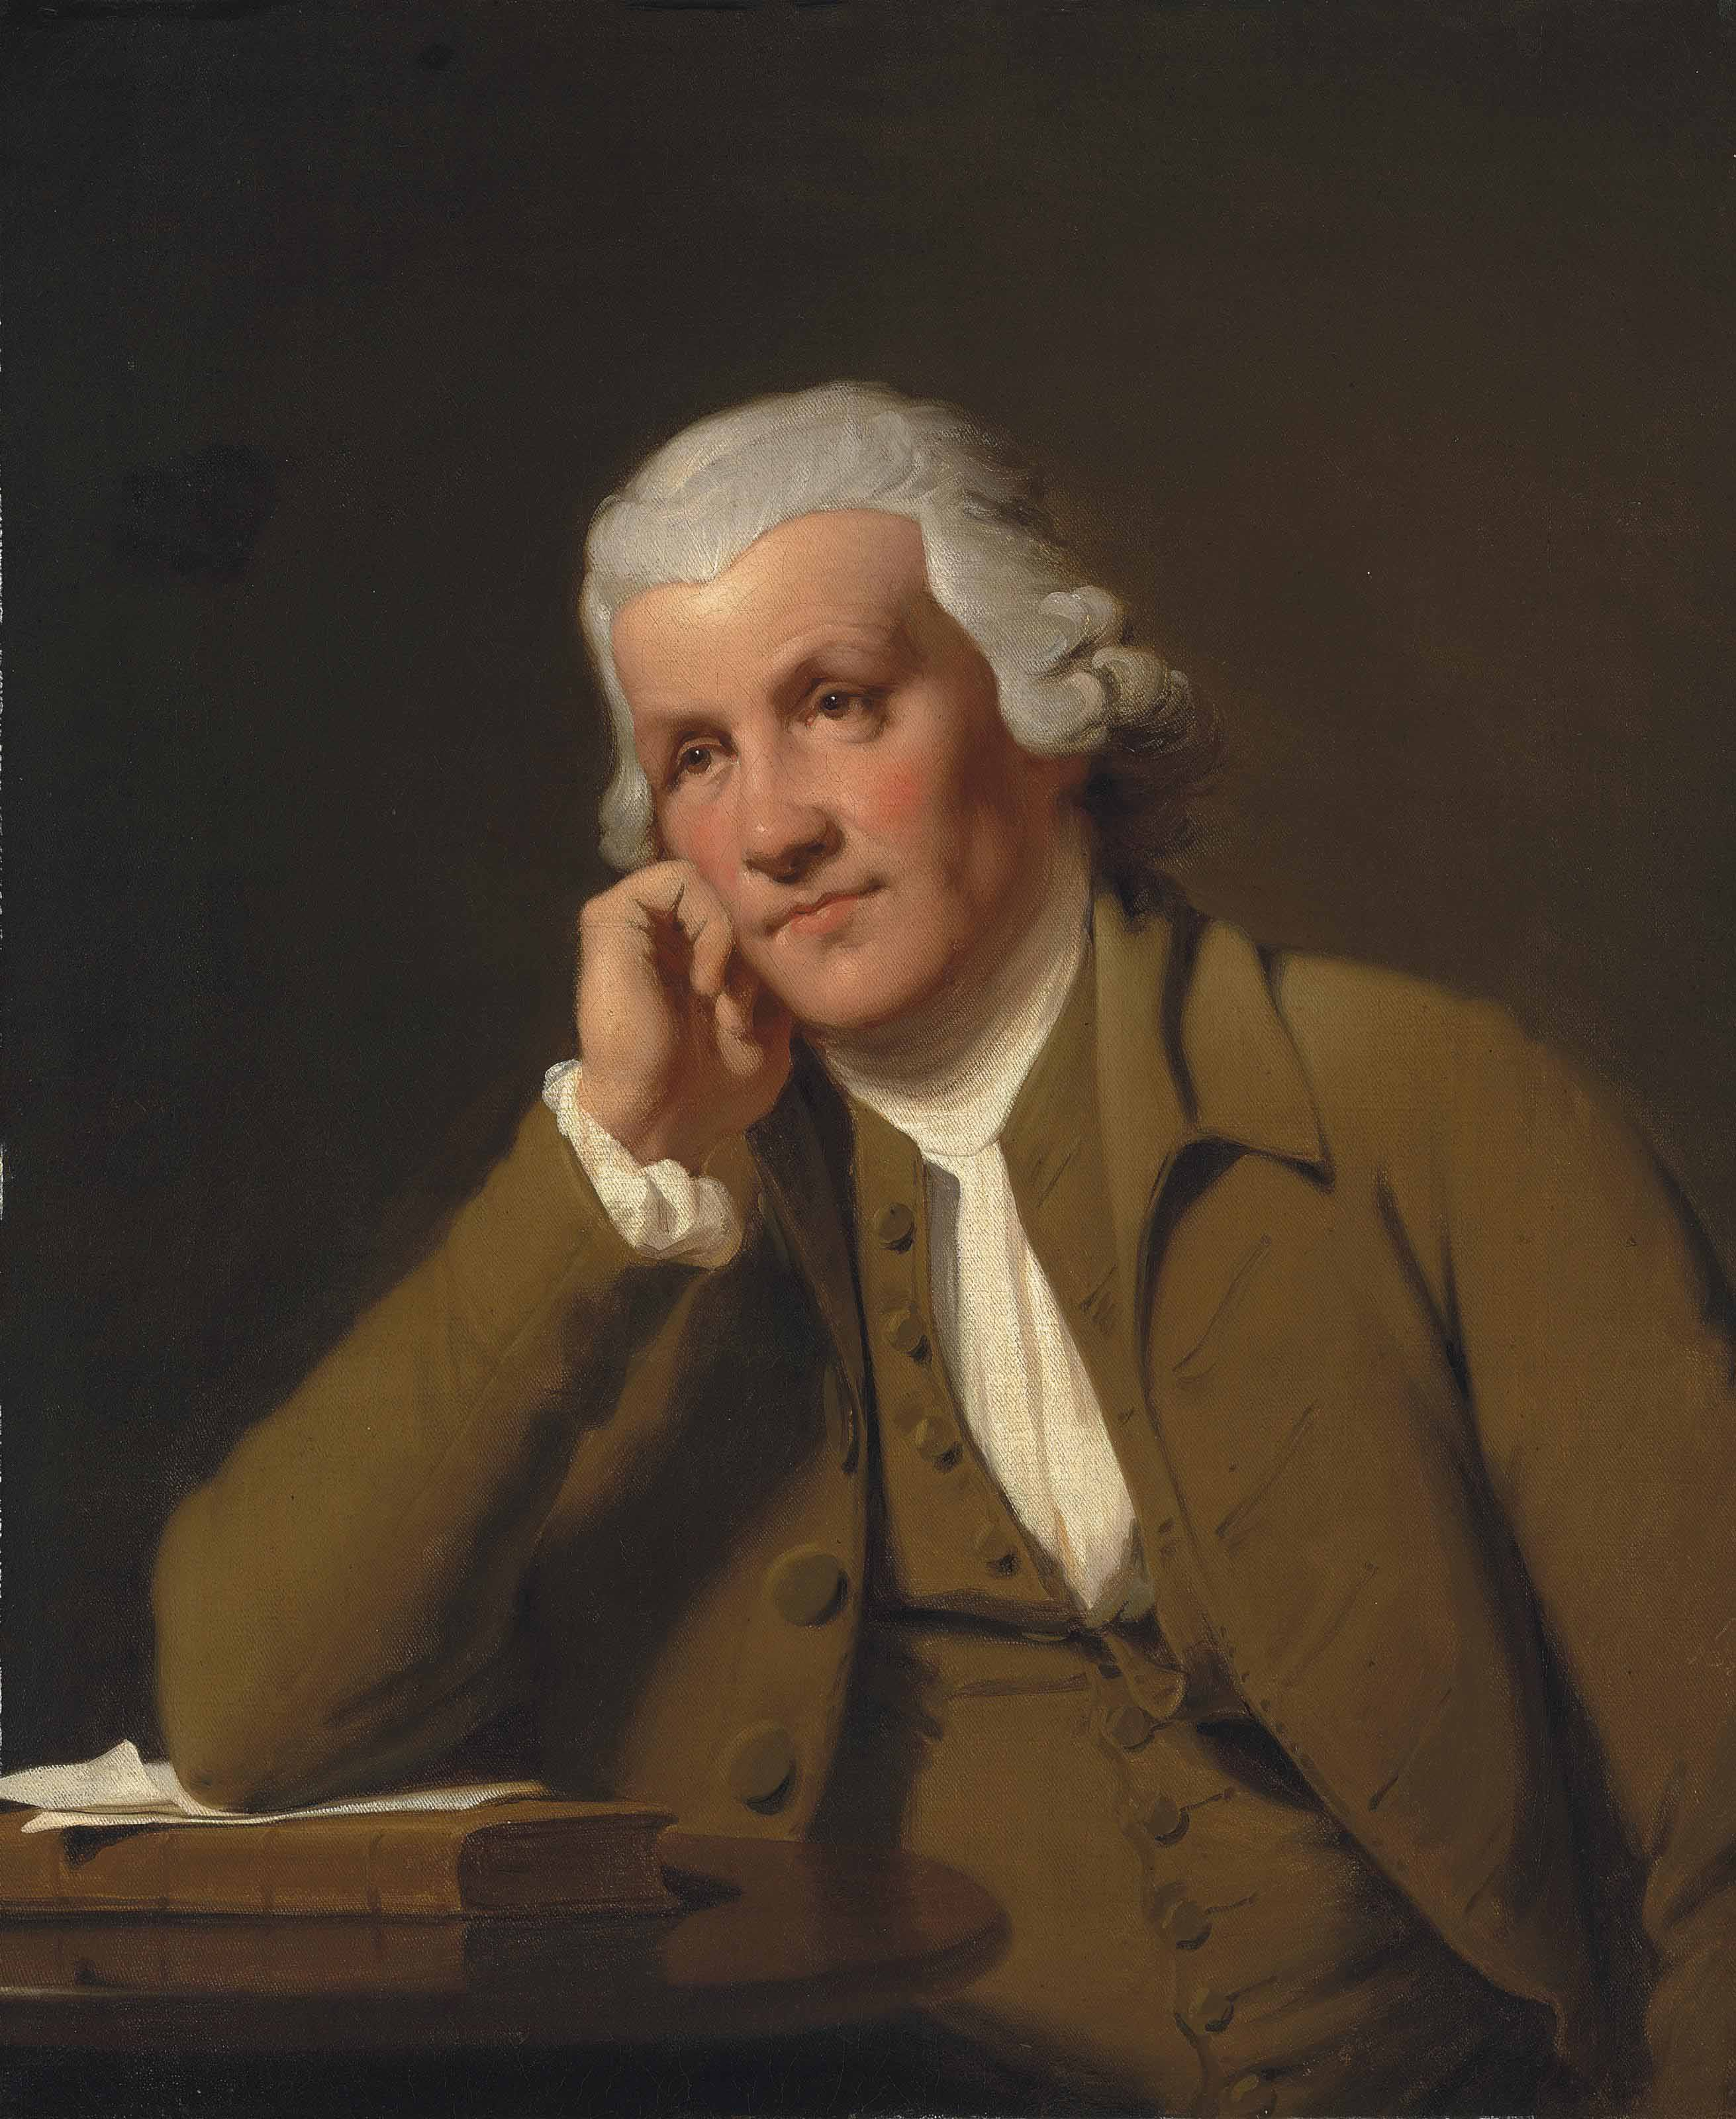 Portrait of Jedediah Strutt (1720-1797), half-length, in a brown waistcoat and jacket, leaning on a book